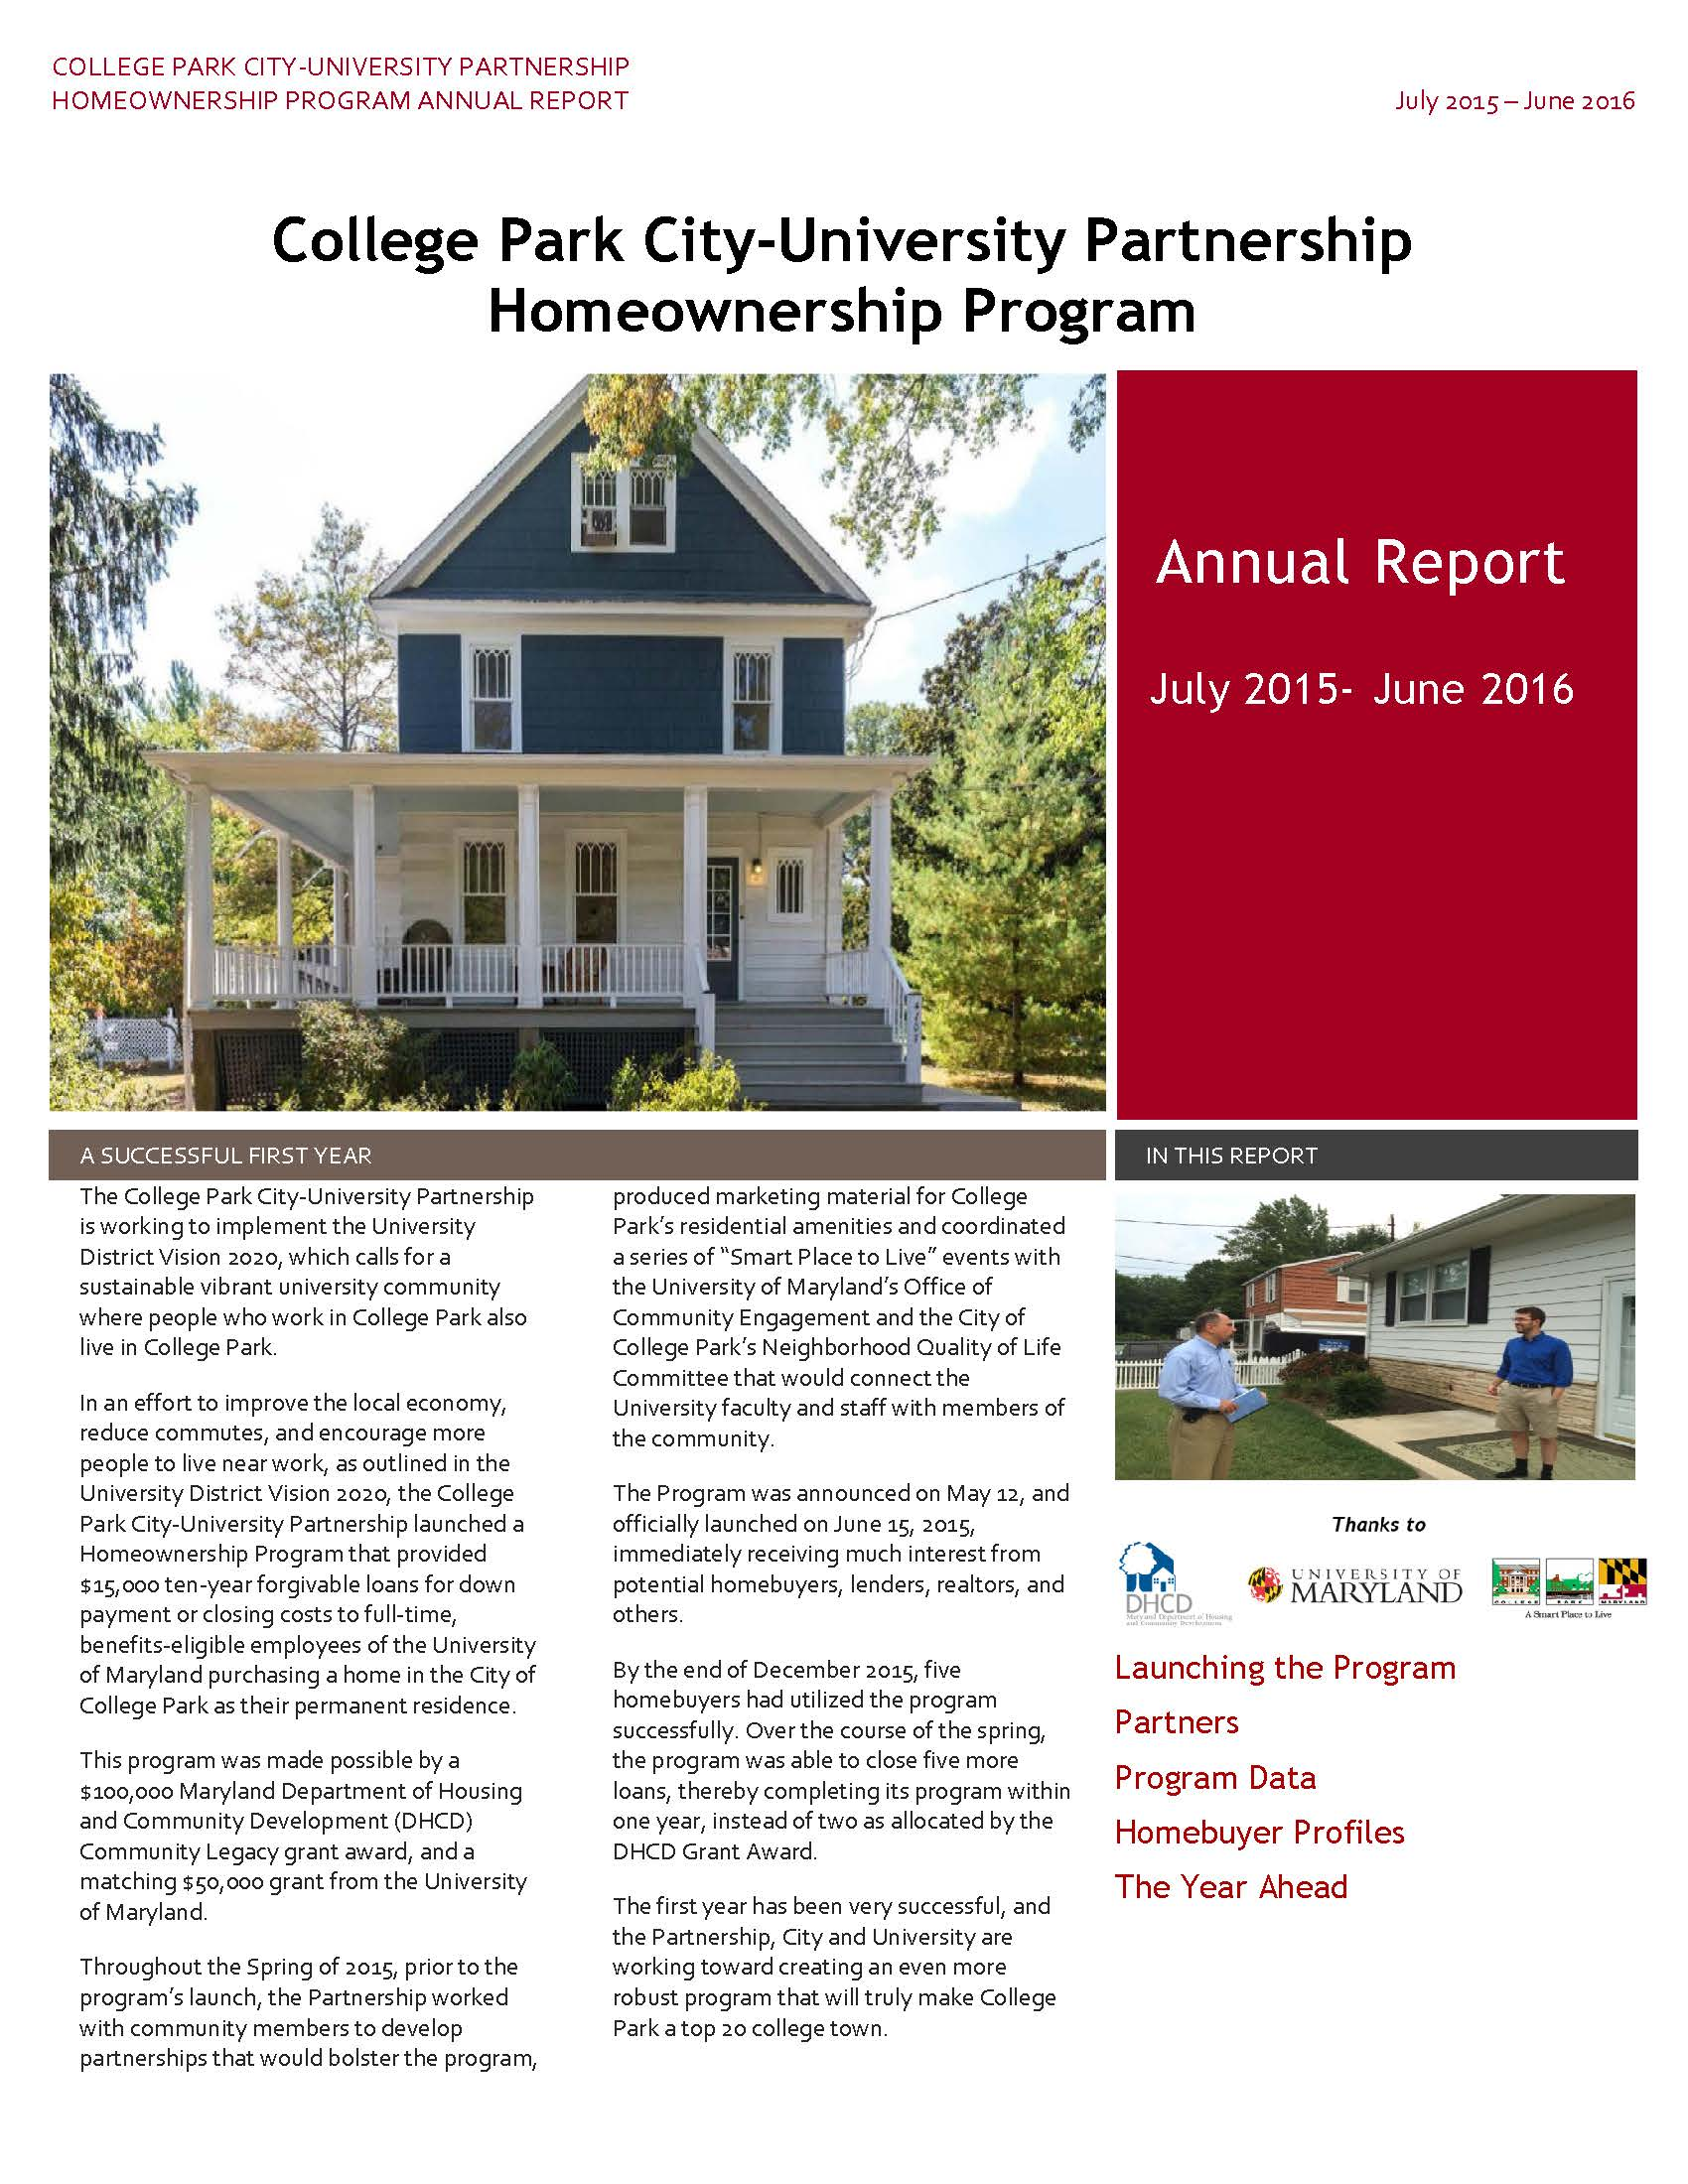 Partnership Homeownership Program FY'16 Annual Report_Page_1